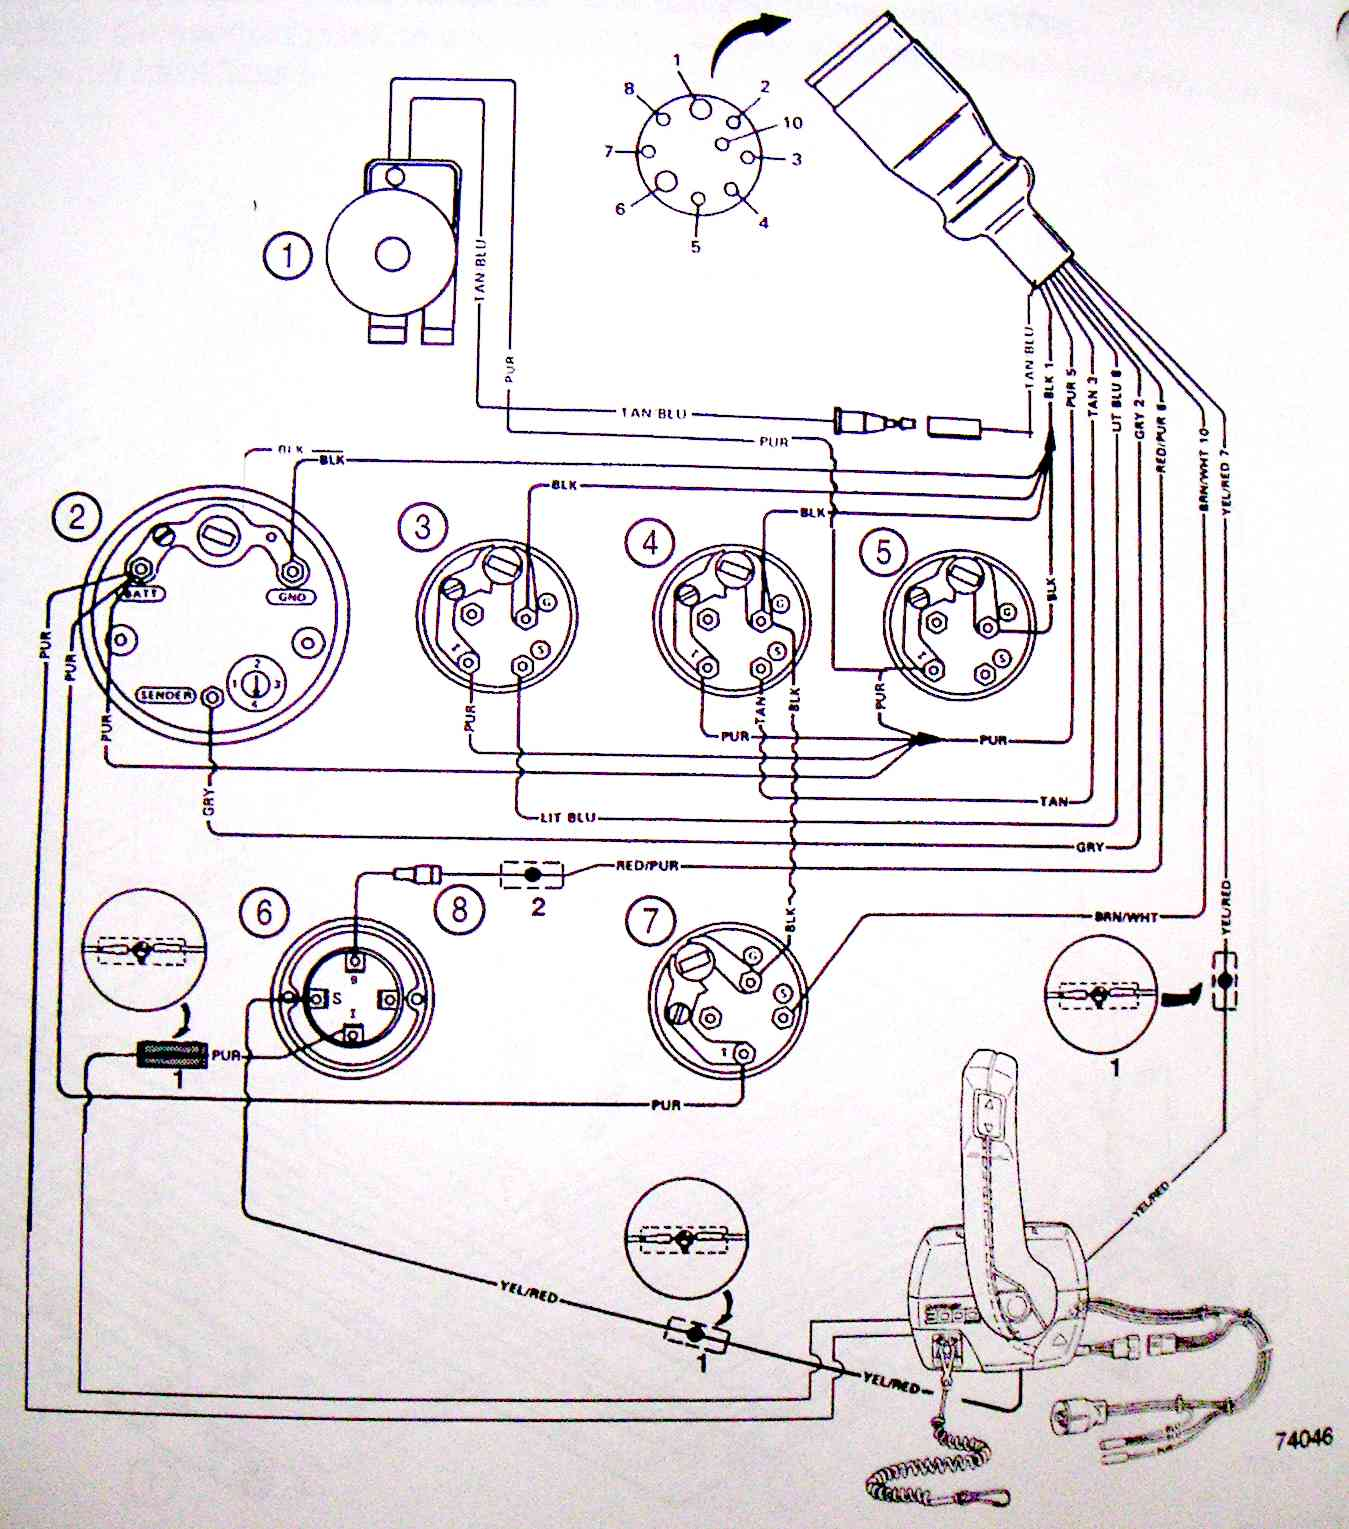 BoatHarness74046 michael's tractors (simplicity and allis chalmers garden tractors) Mercury Boat Instrument Panel Wiring Diagrams at edmiracle.co